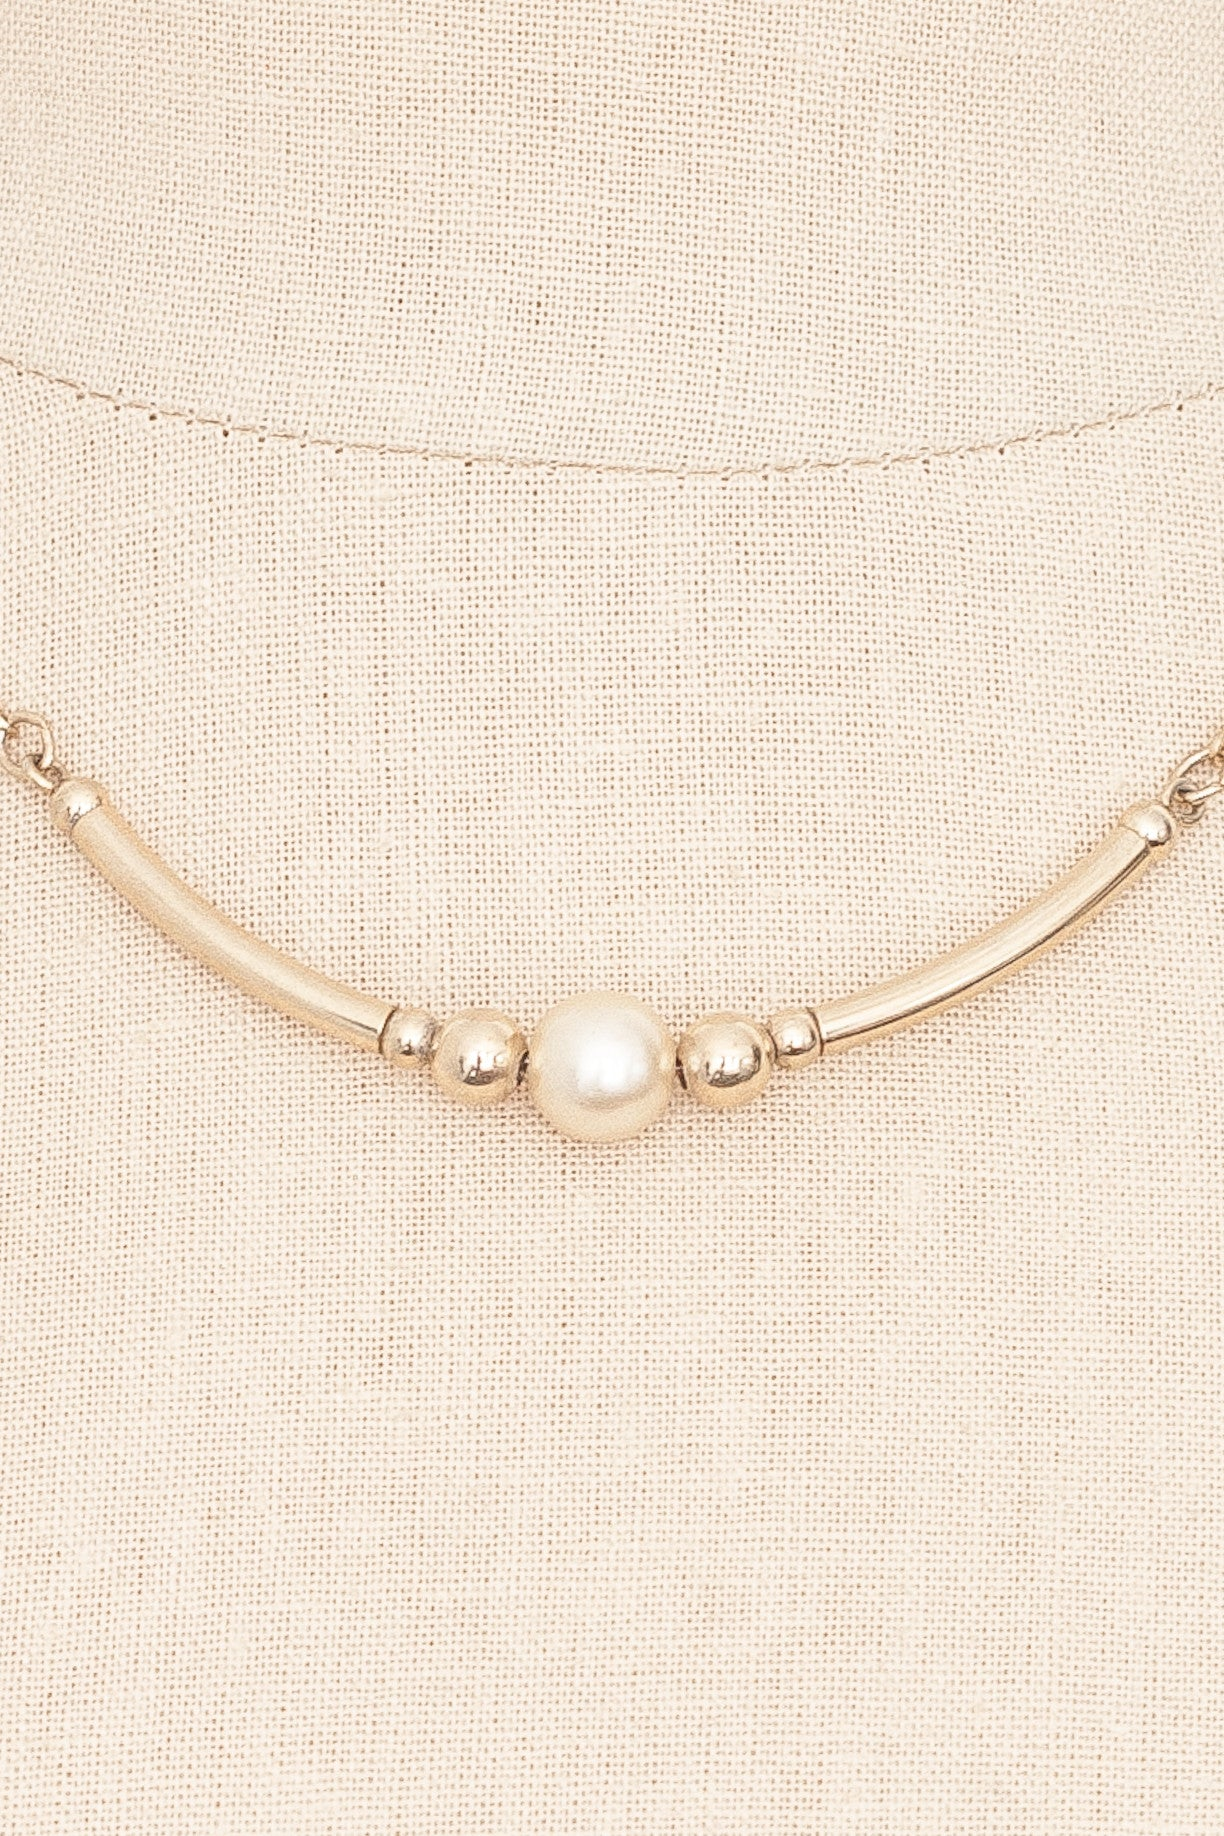 70's__Vintage__Pearl Bar Necklace